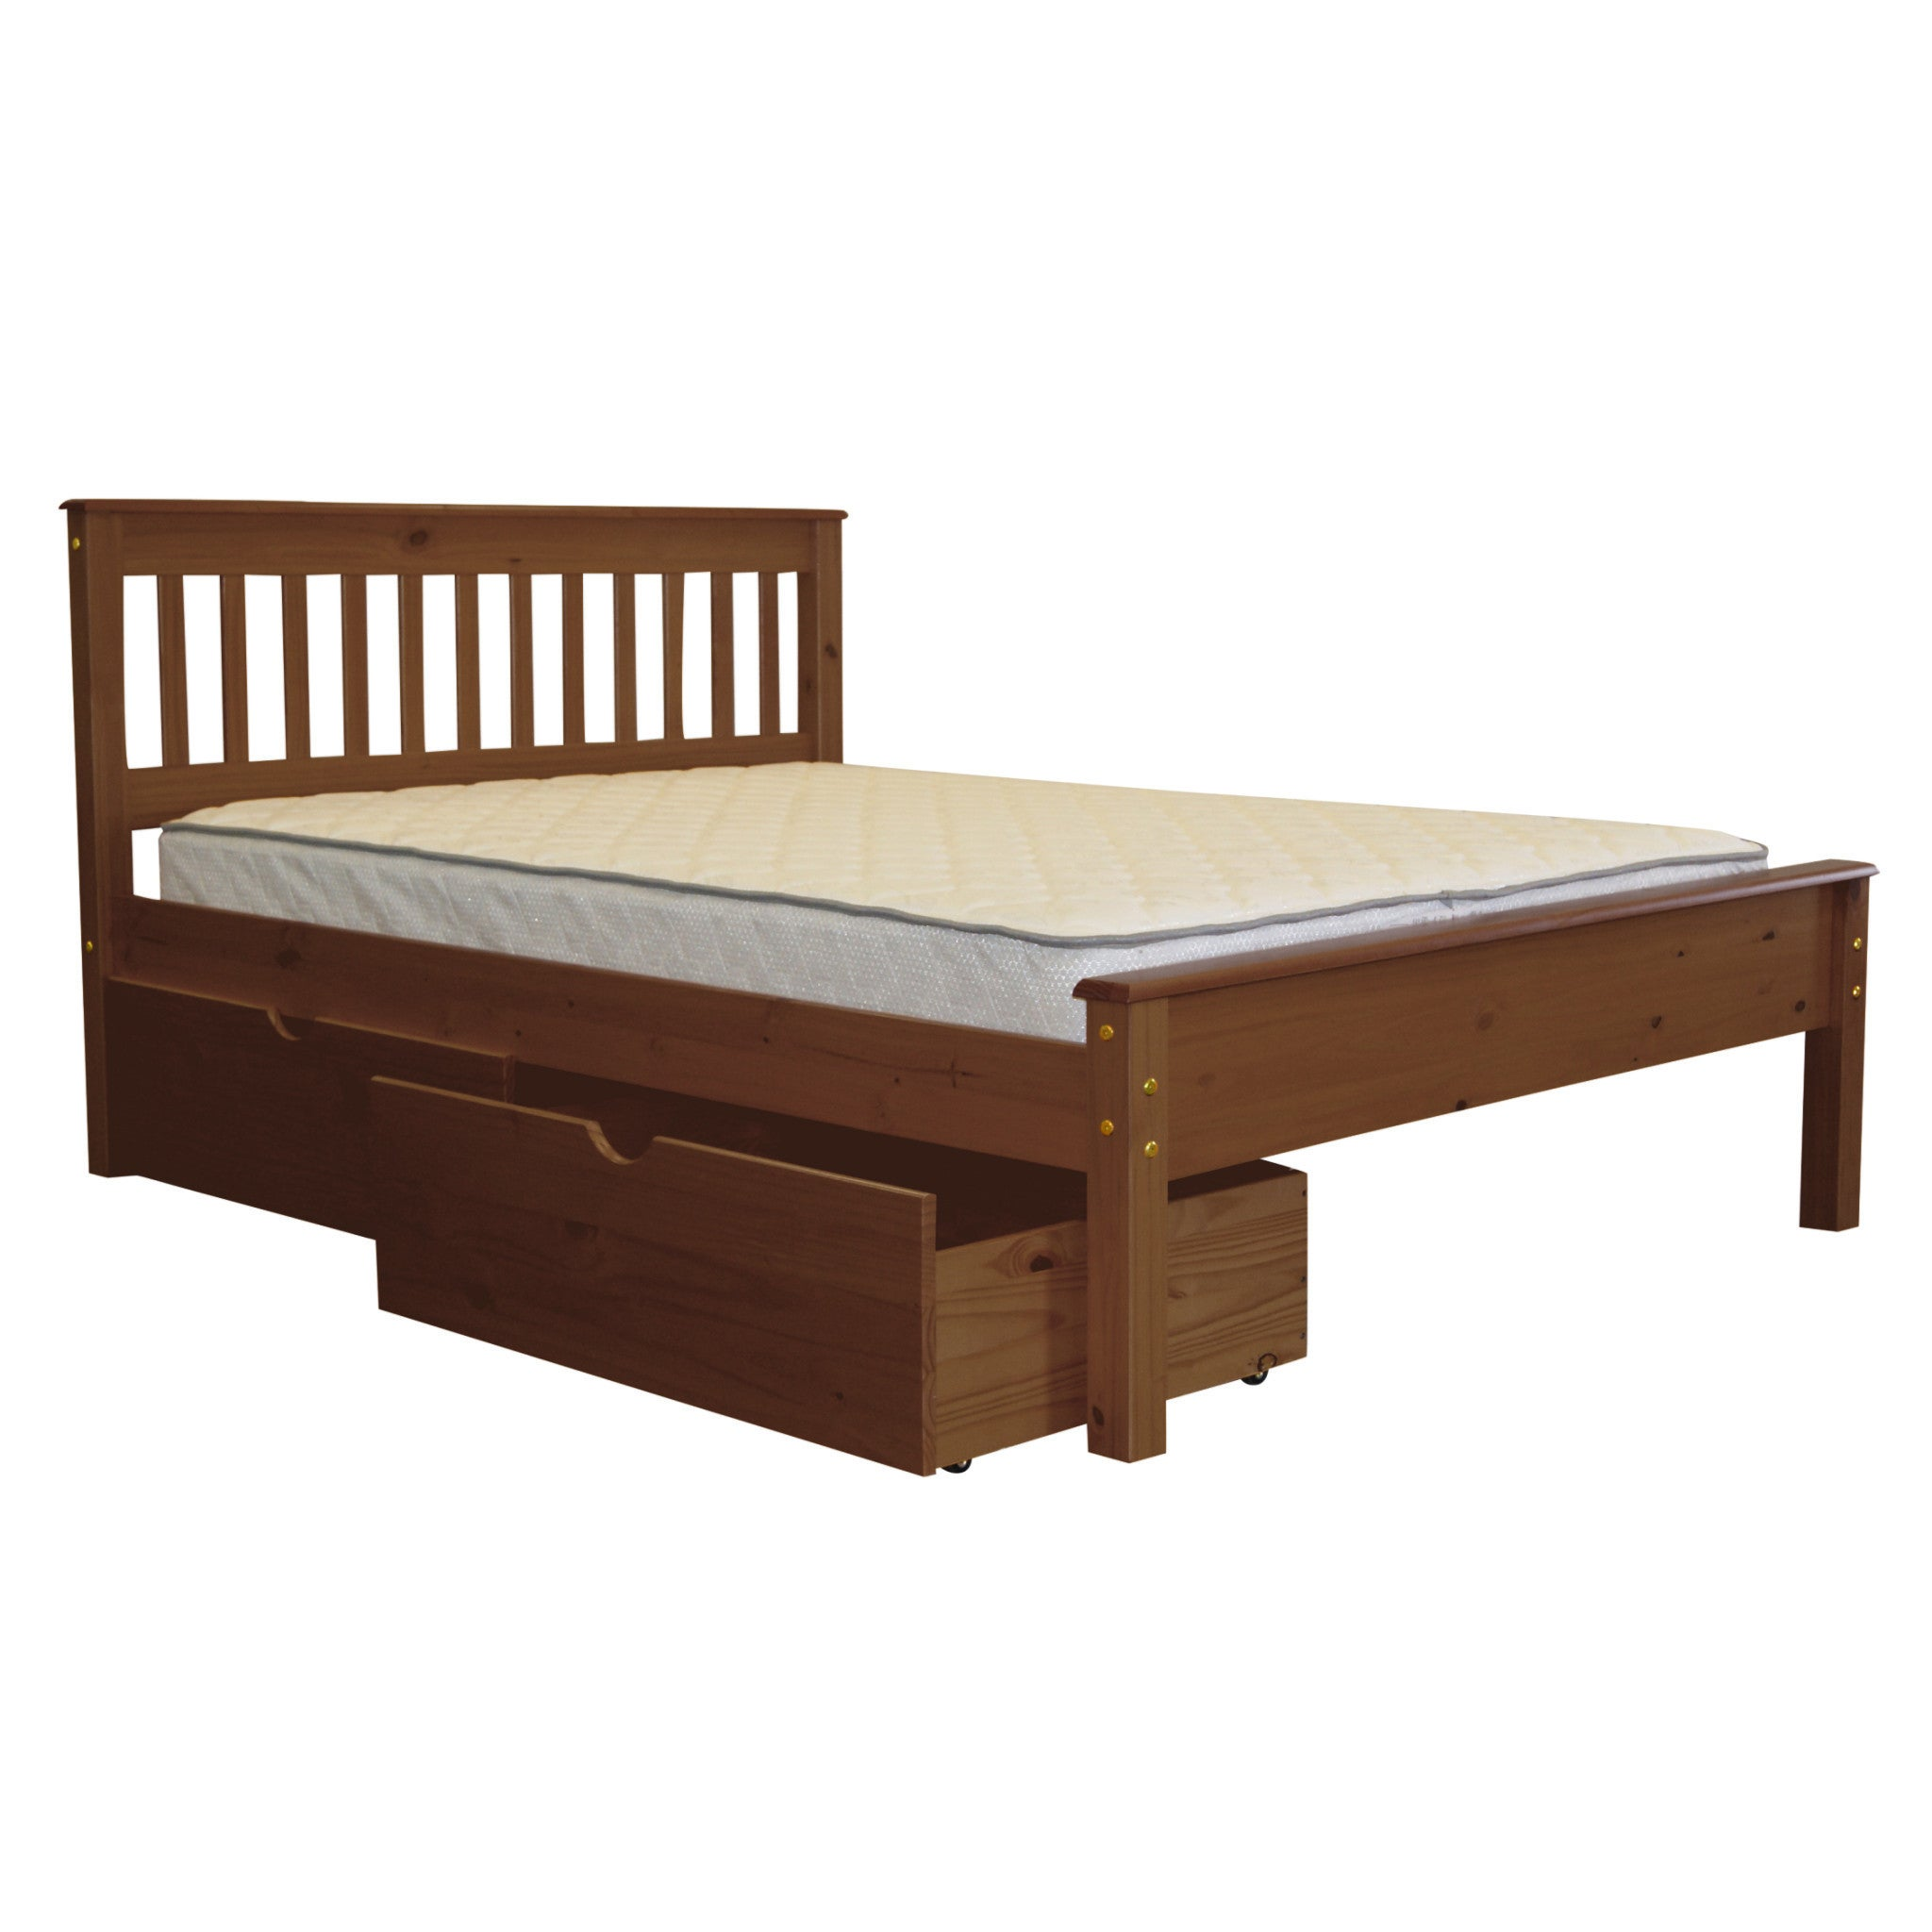 Bedz King Full Bed Expresso with Drawers (Full - Espresso...